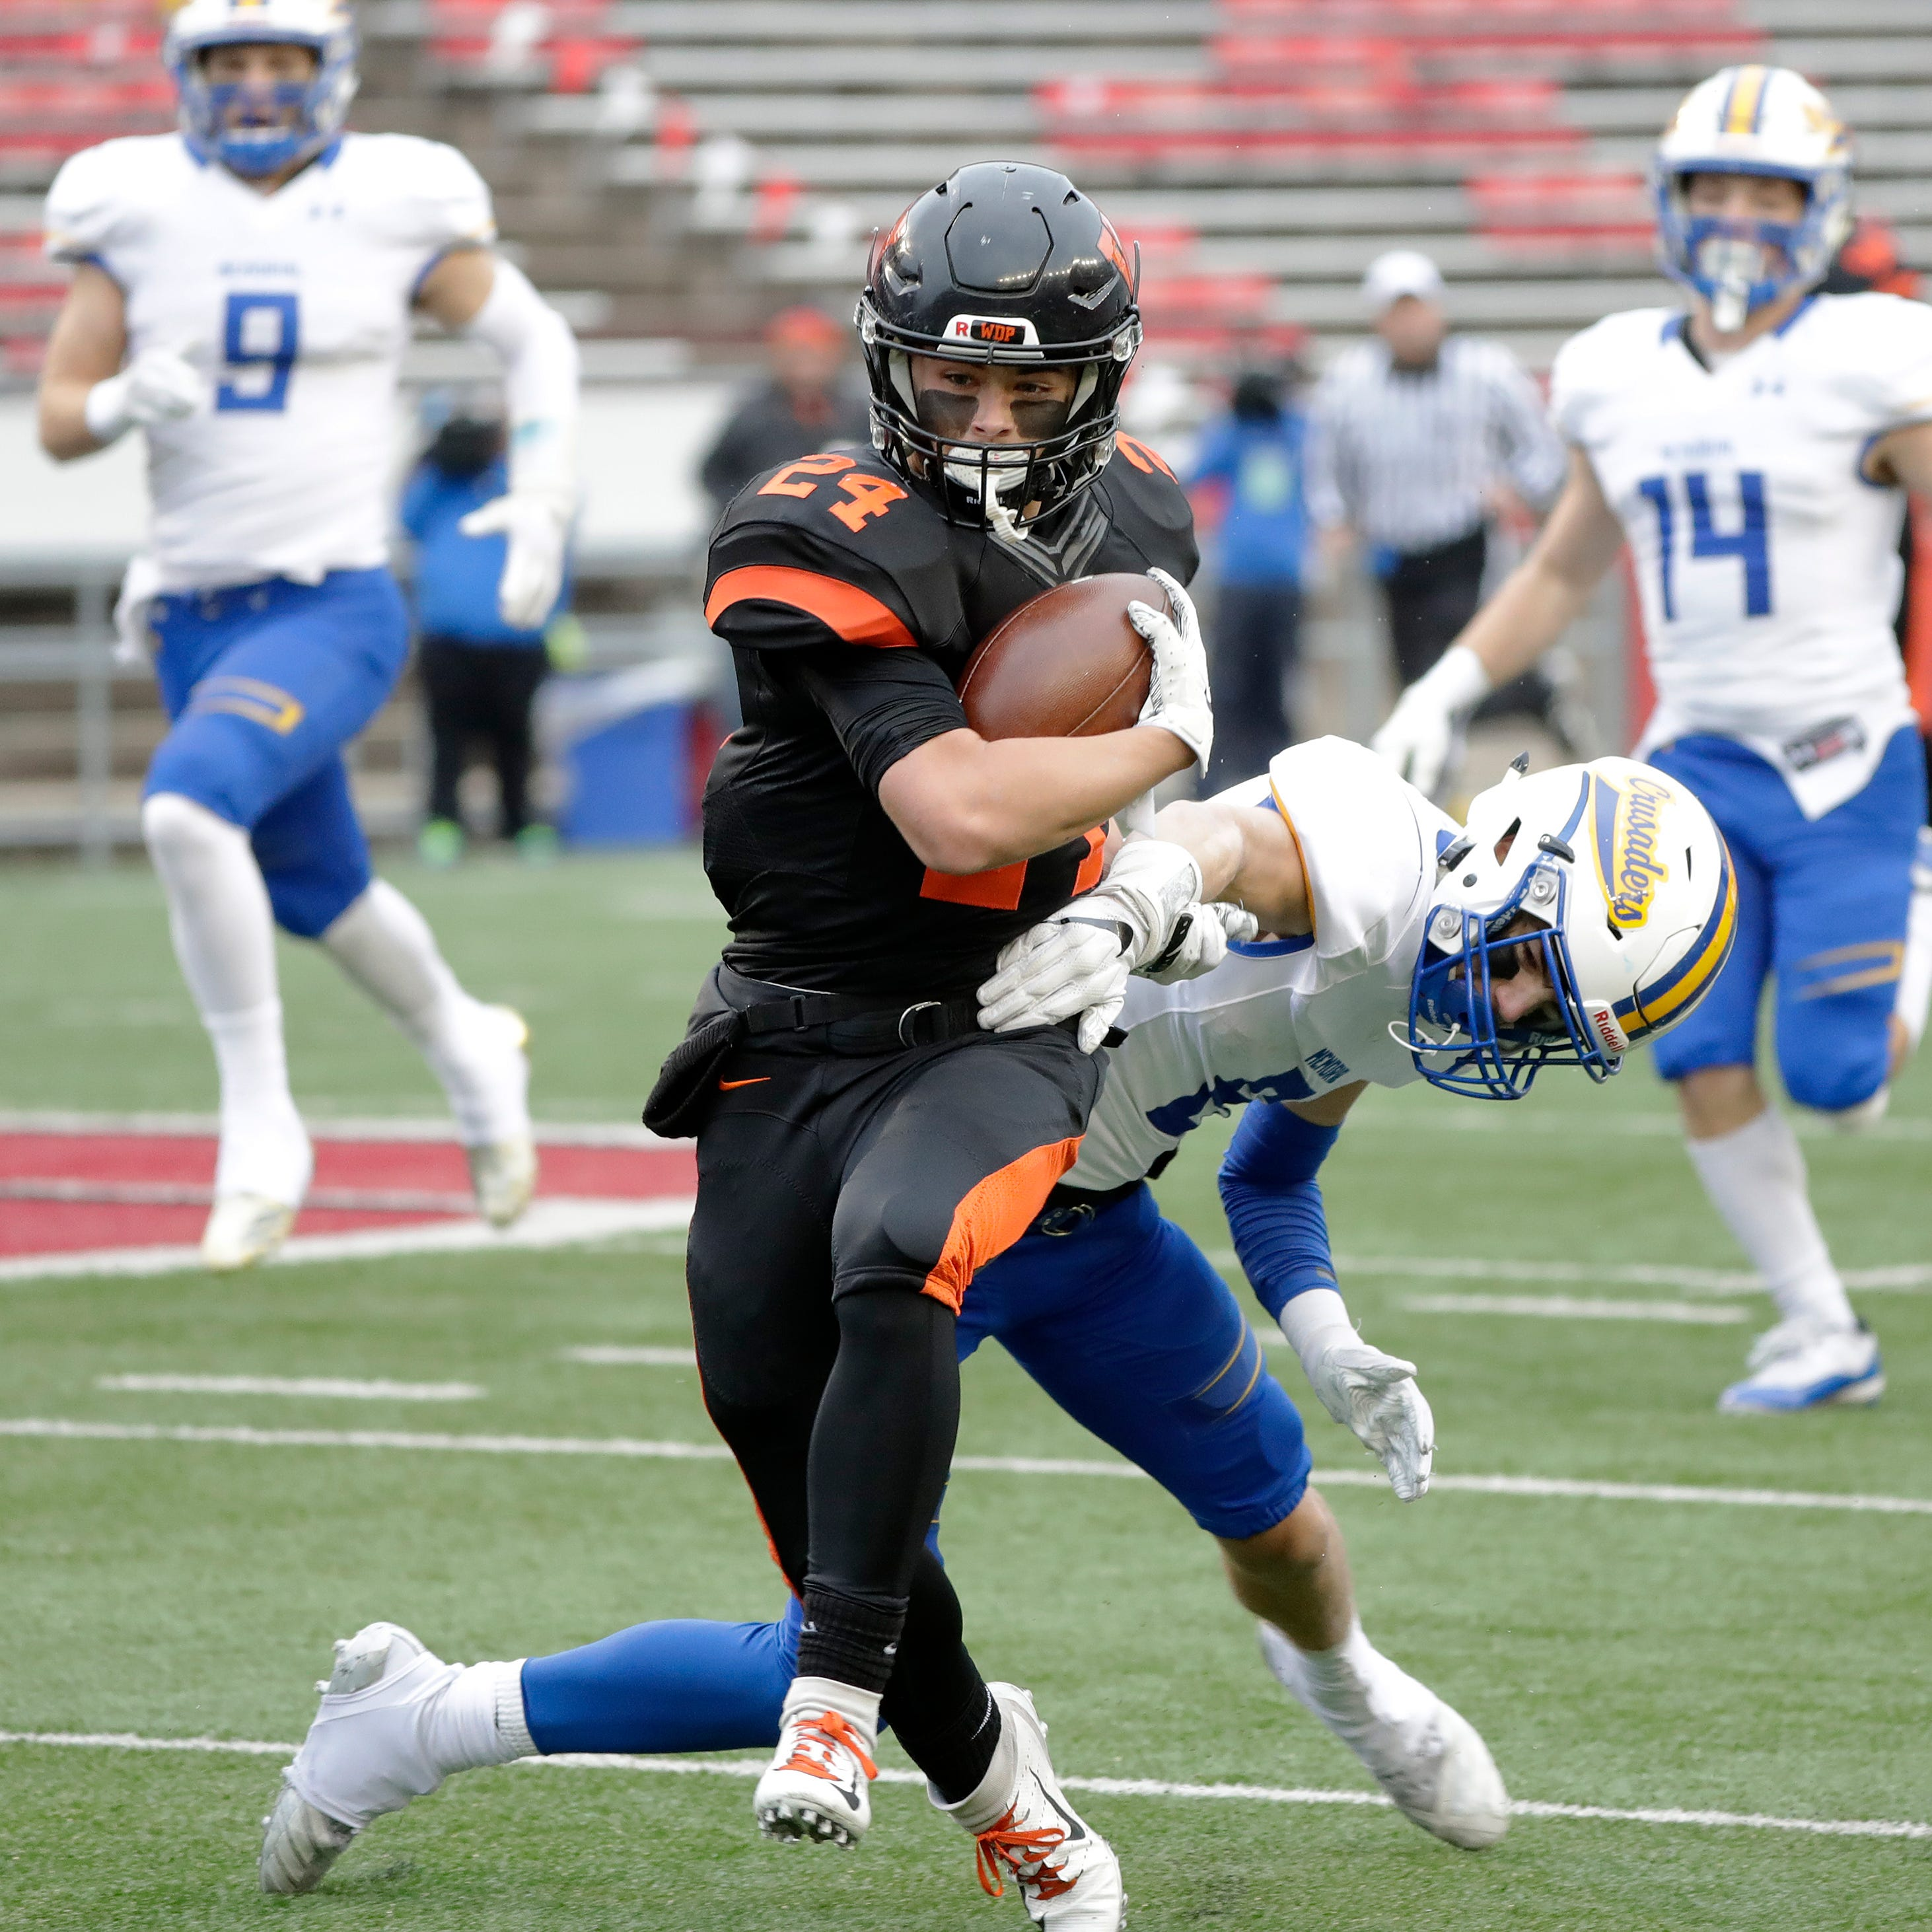 WIAA state football: Rally stuns West De Pere in title loss to Catholic Memorial